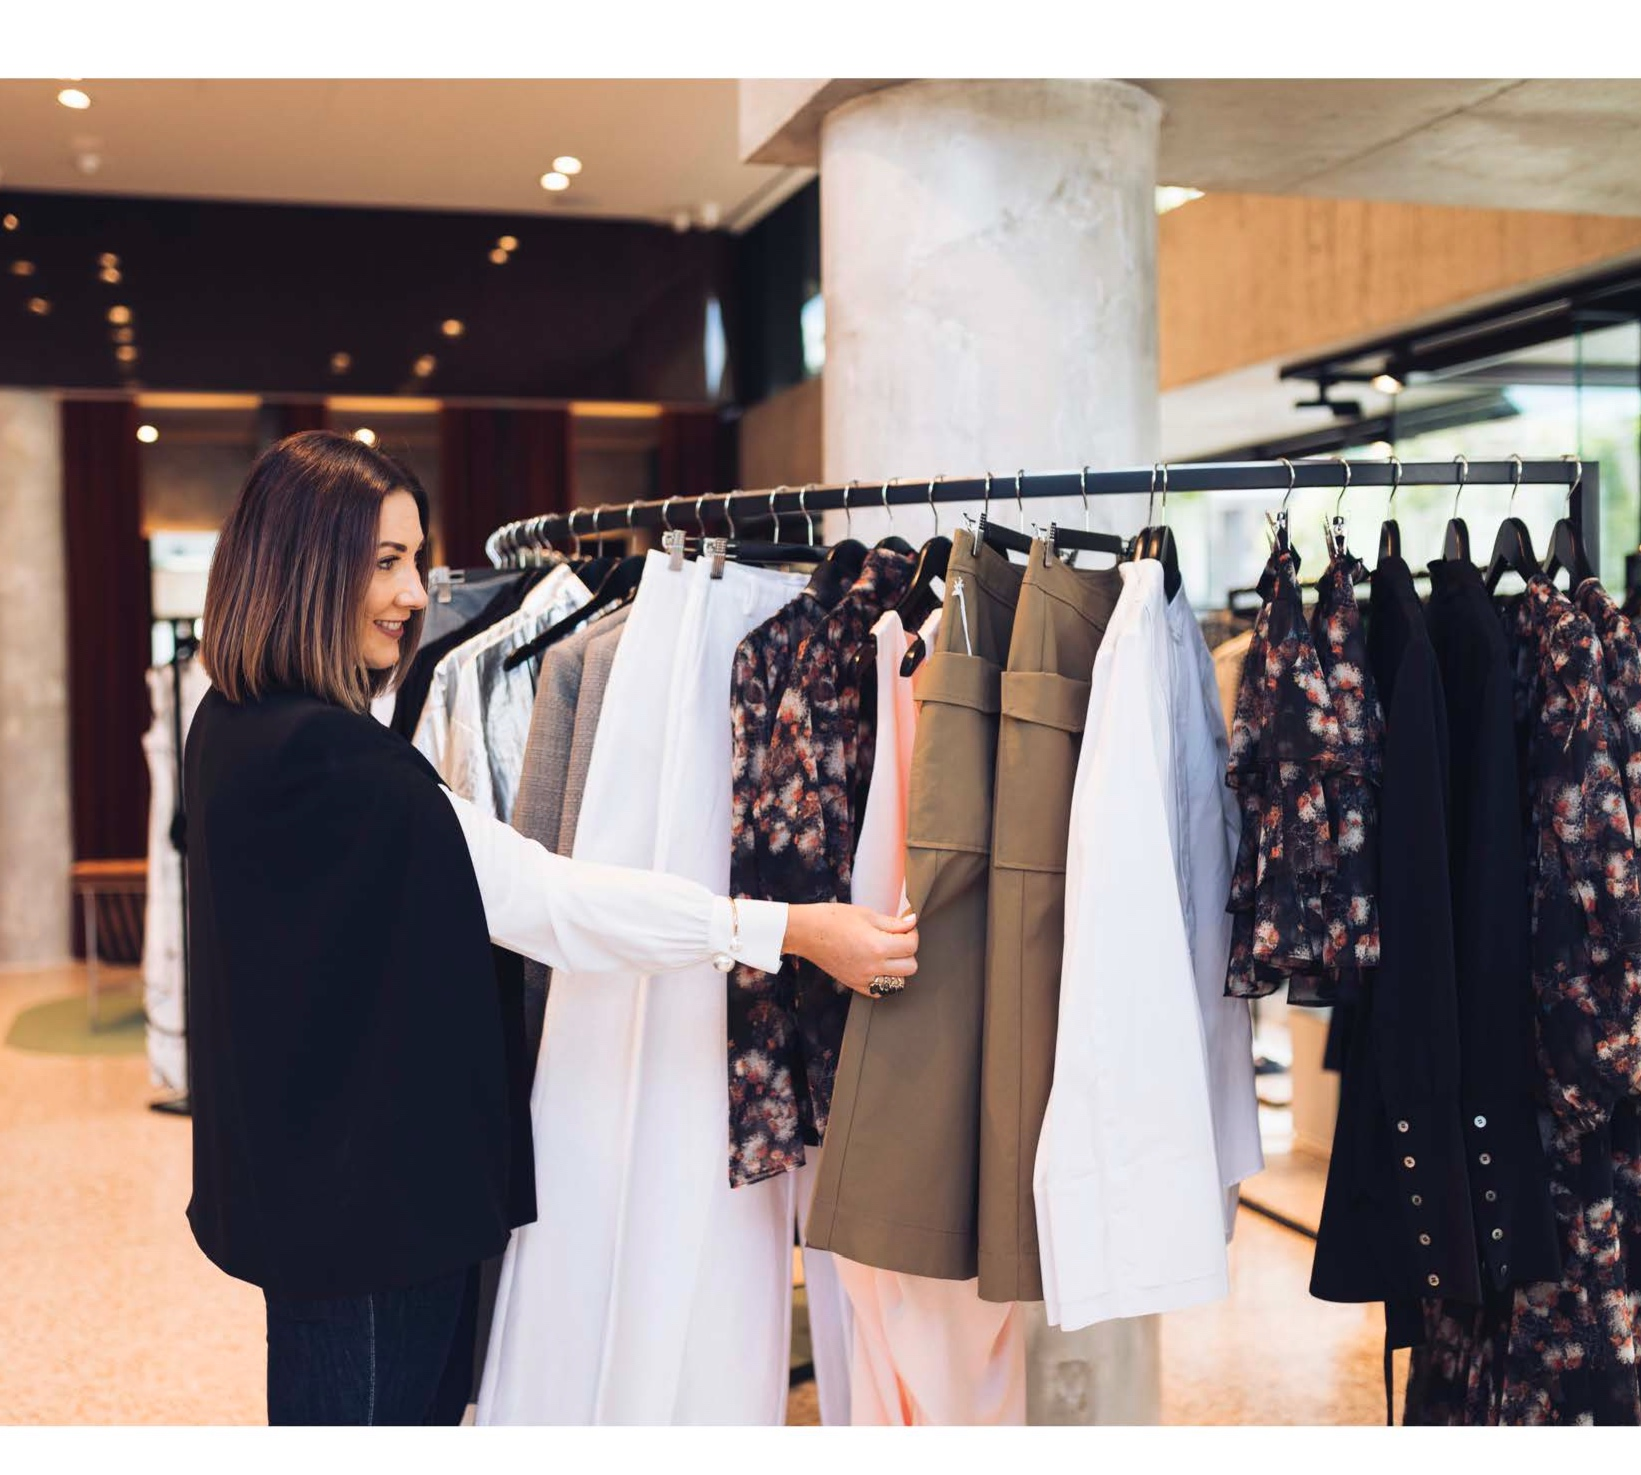 Brisbane stylist Kerrie Carucci shops for womens clothing for her clients.